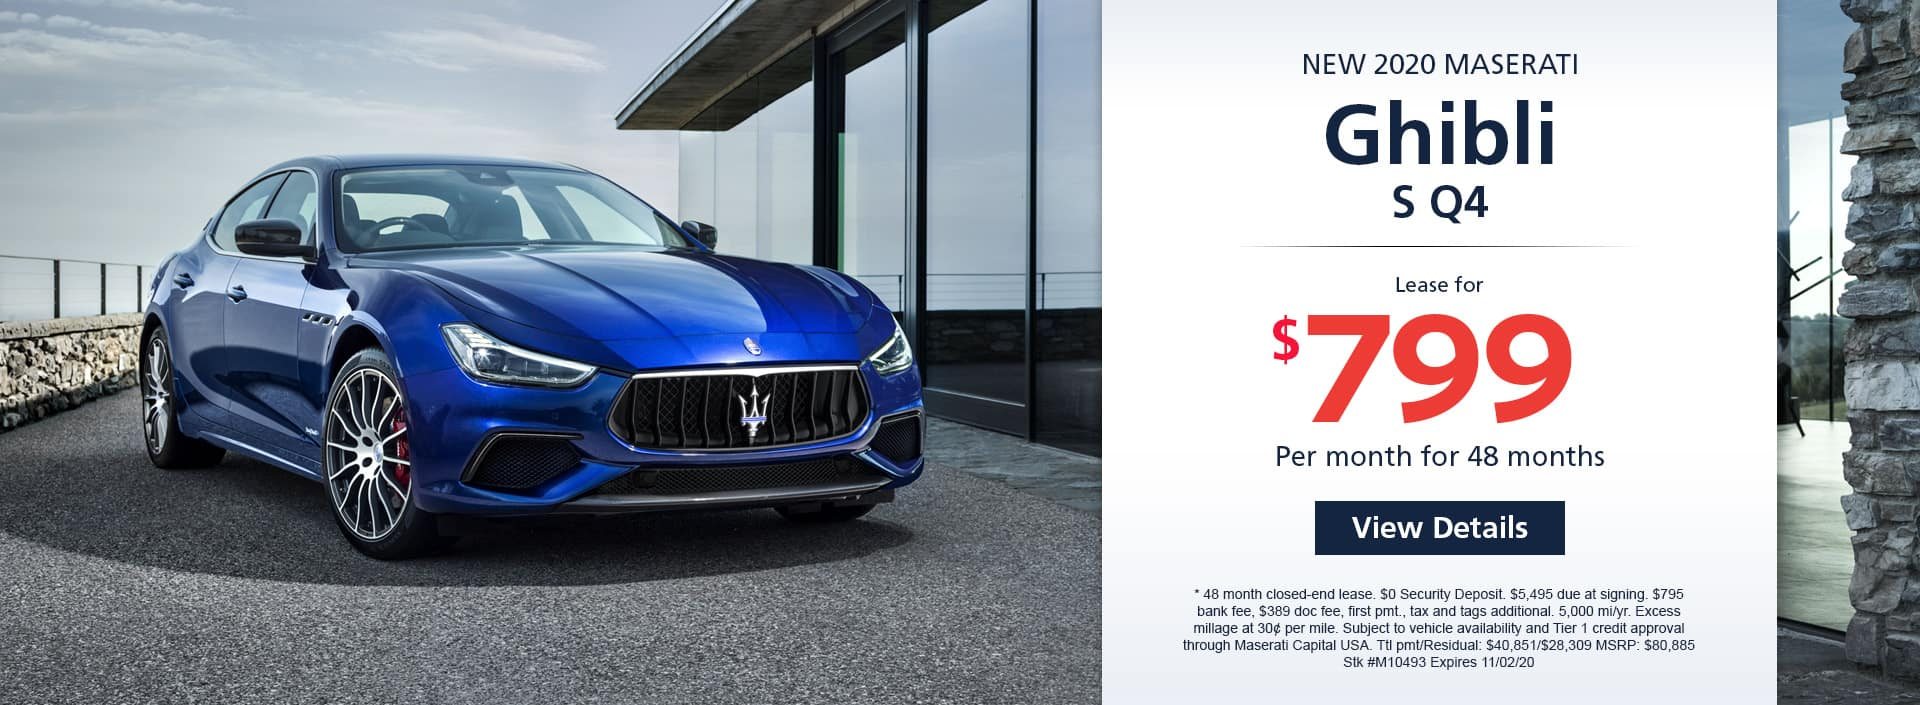 Lease a new 2020 Maserati Ghibli S Q4 for $799 a month for 48 months. Or get special 0% APR financing for up to 60 months or 0% APR financing up to months